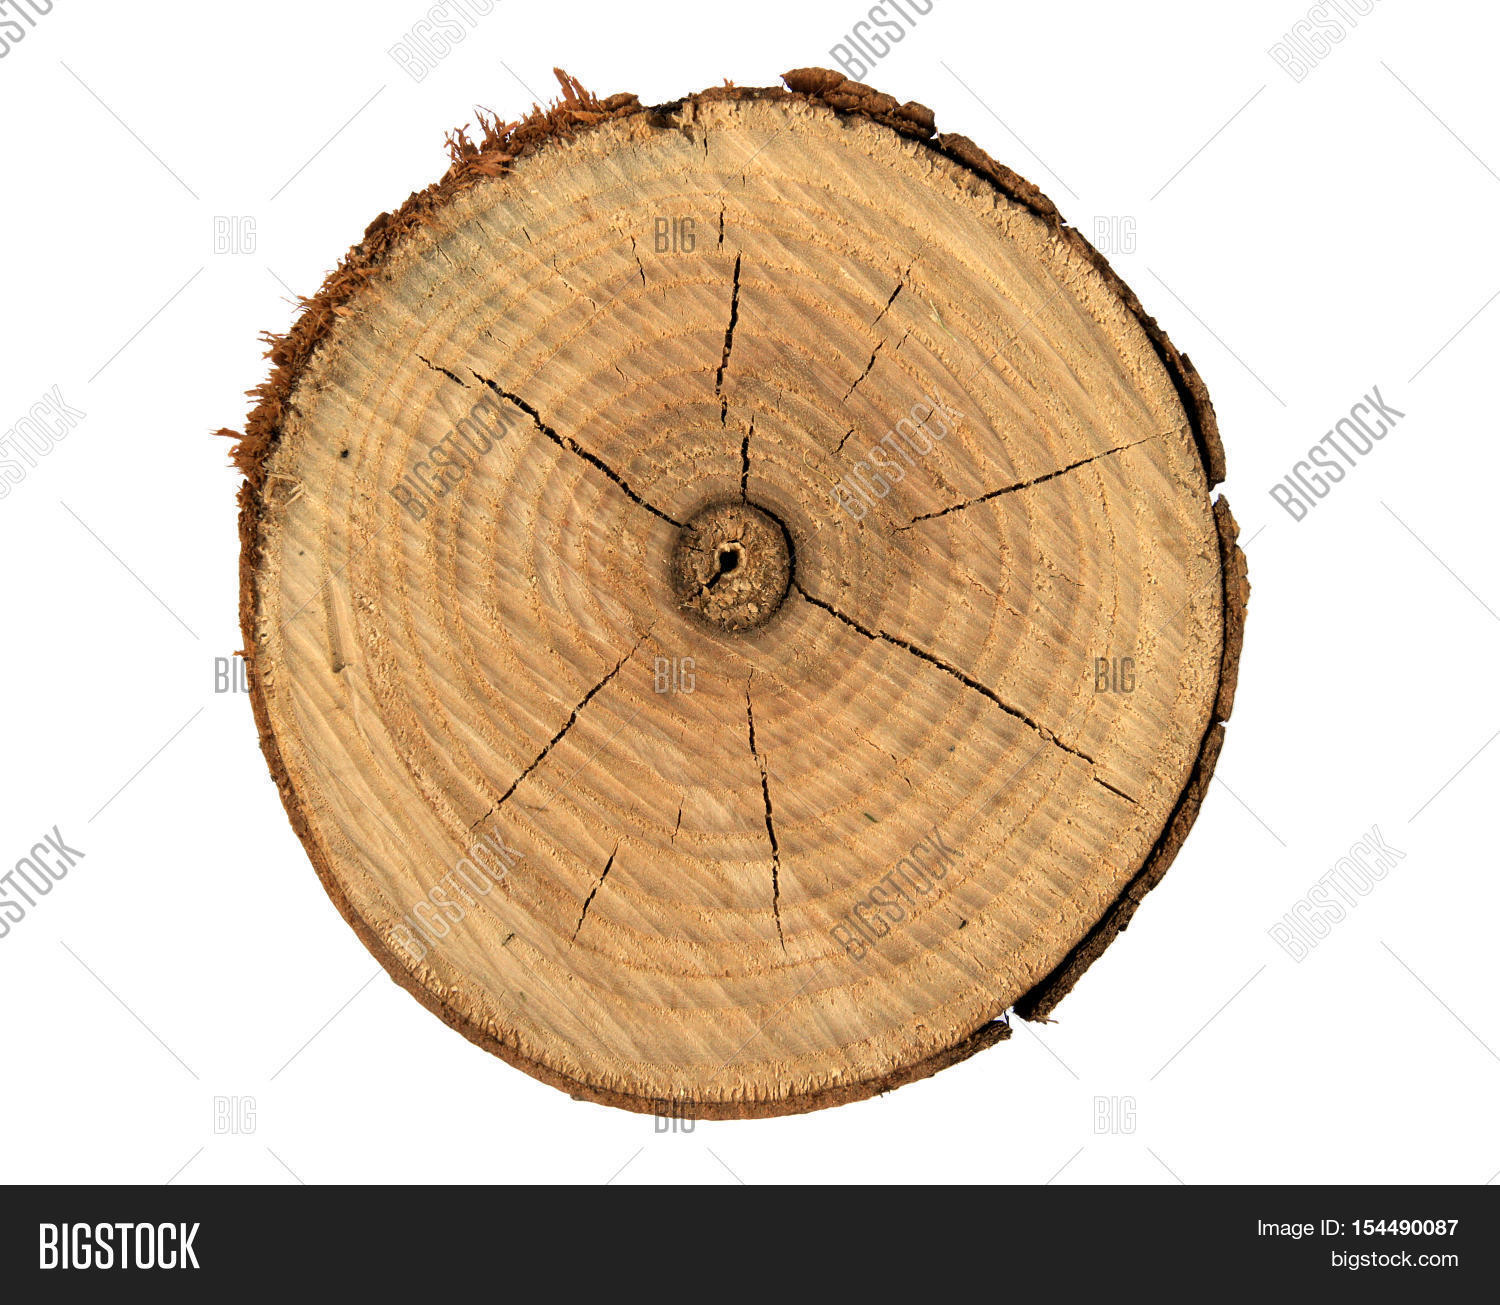 of b tree section isolated growth trunk background with over transparent png graphicstock stock pm rings a sb image